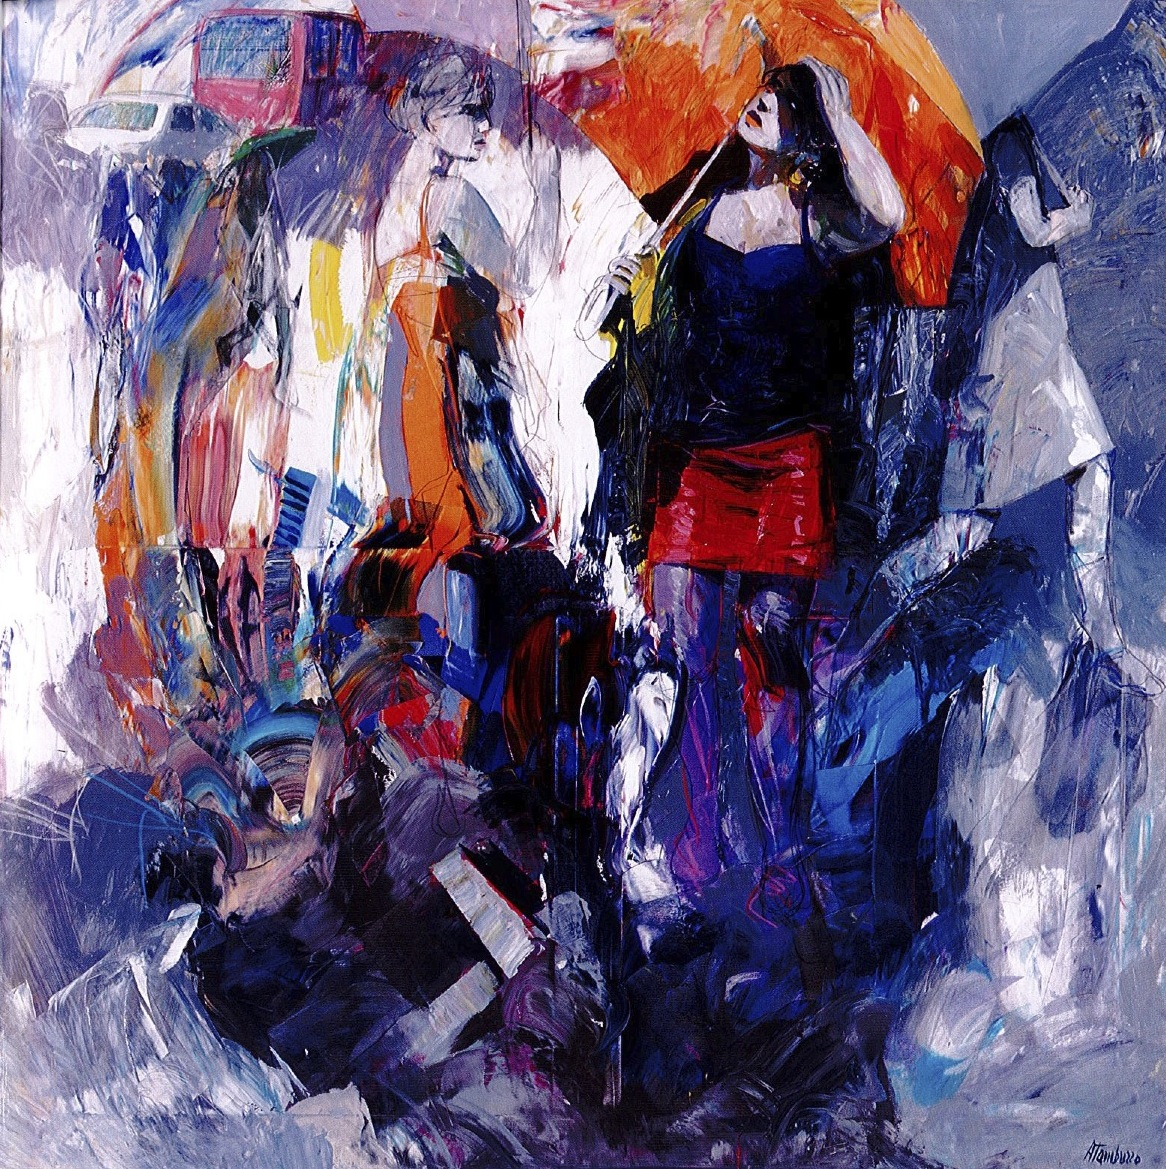 Women and umbrellas, olio e acrilico su tela, 140x140 cm